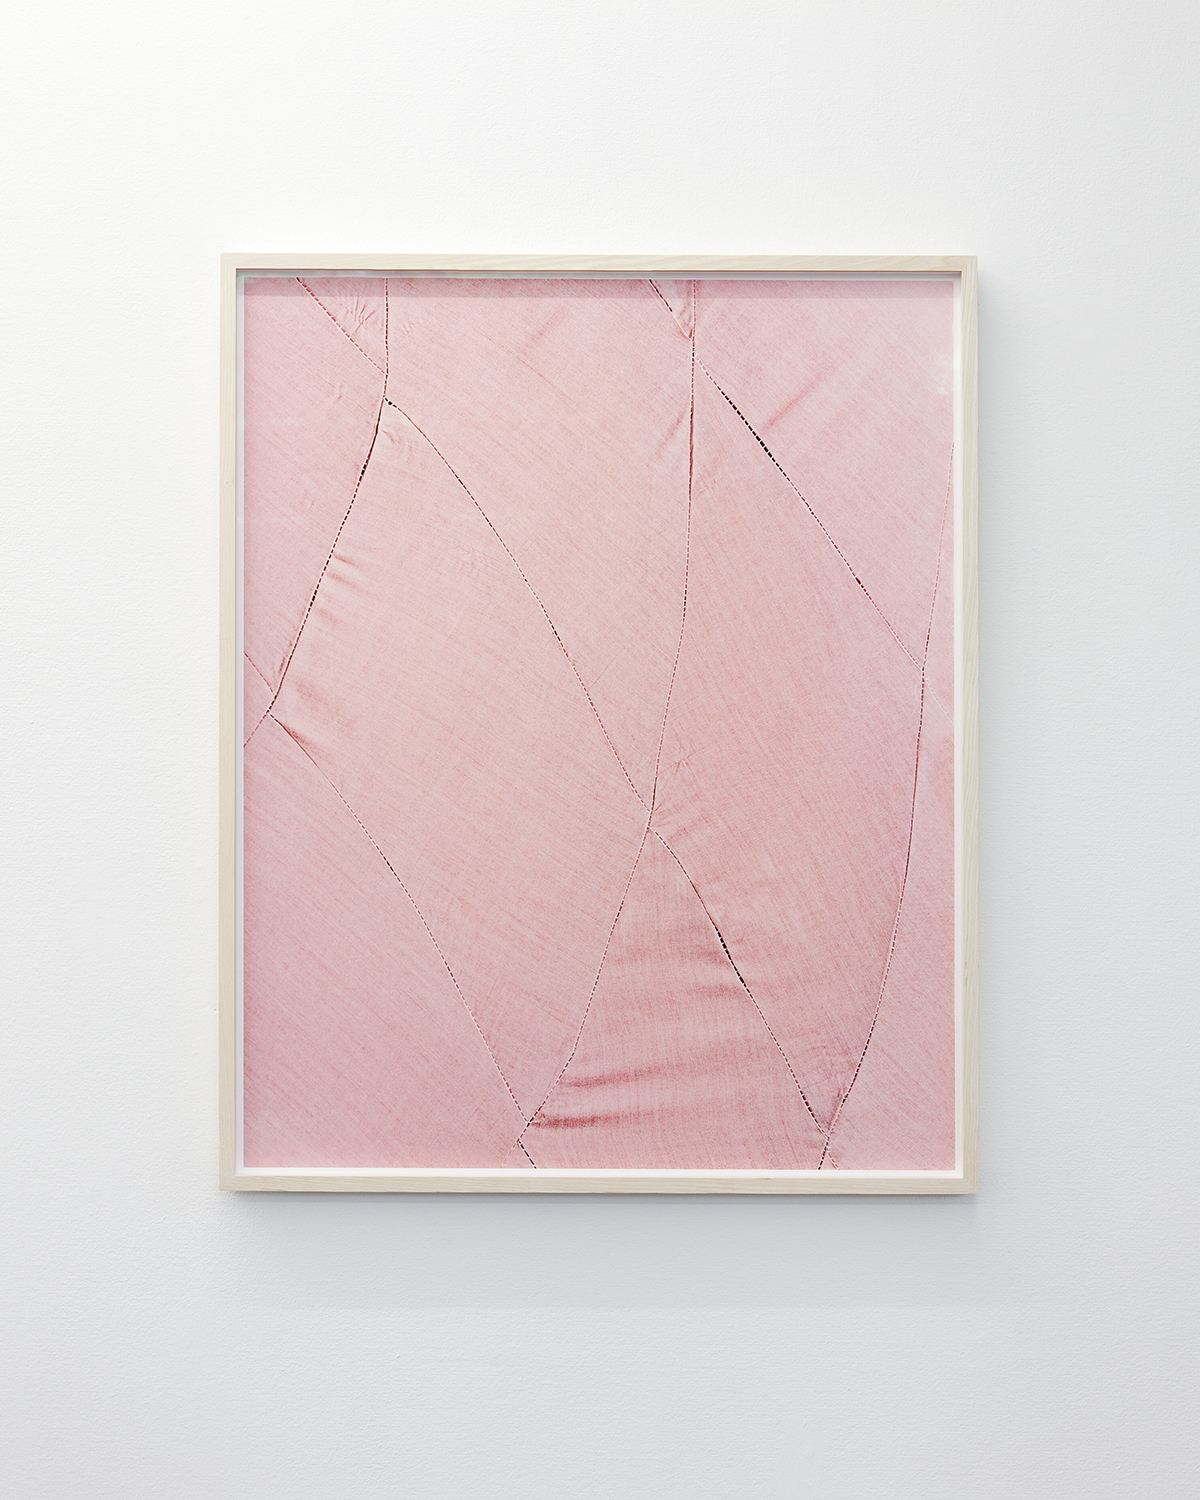 Linda Hofvander, Suggested Shape (pink), 2019, Inkjet print, museum glass, whitewashed frame, 92 x 75 cm, edition of 5